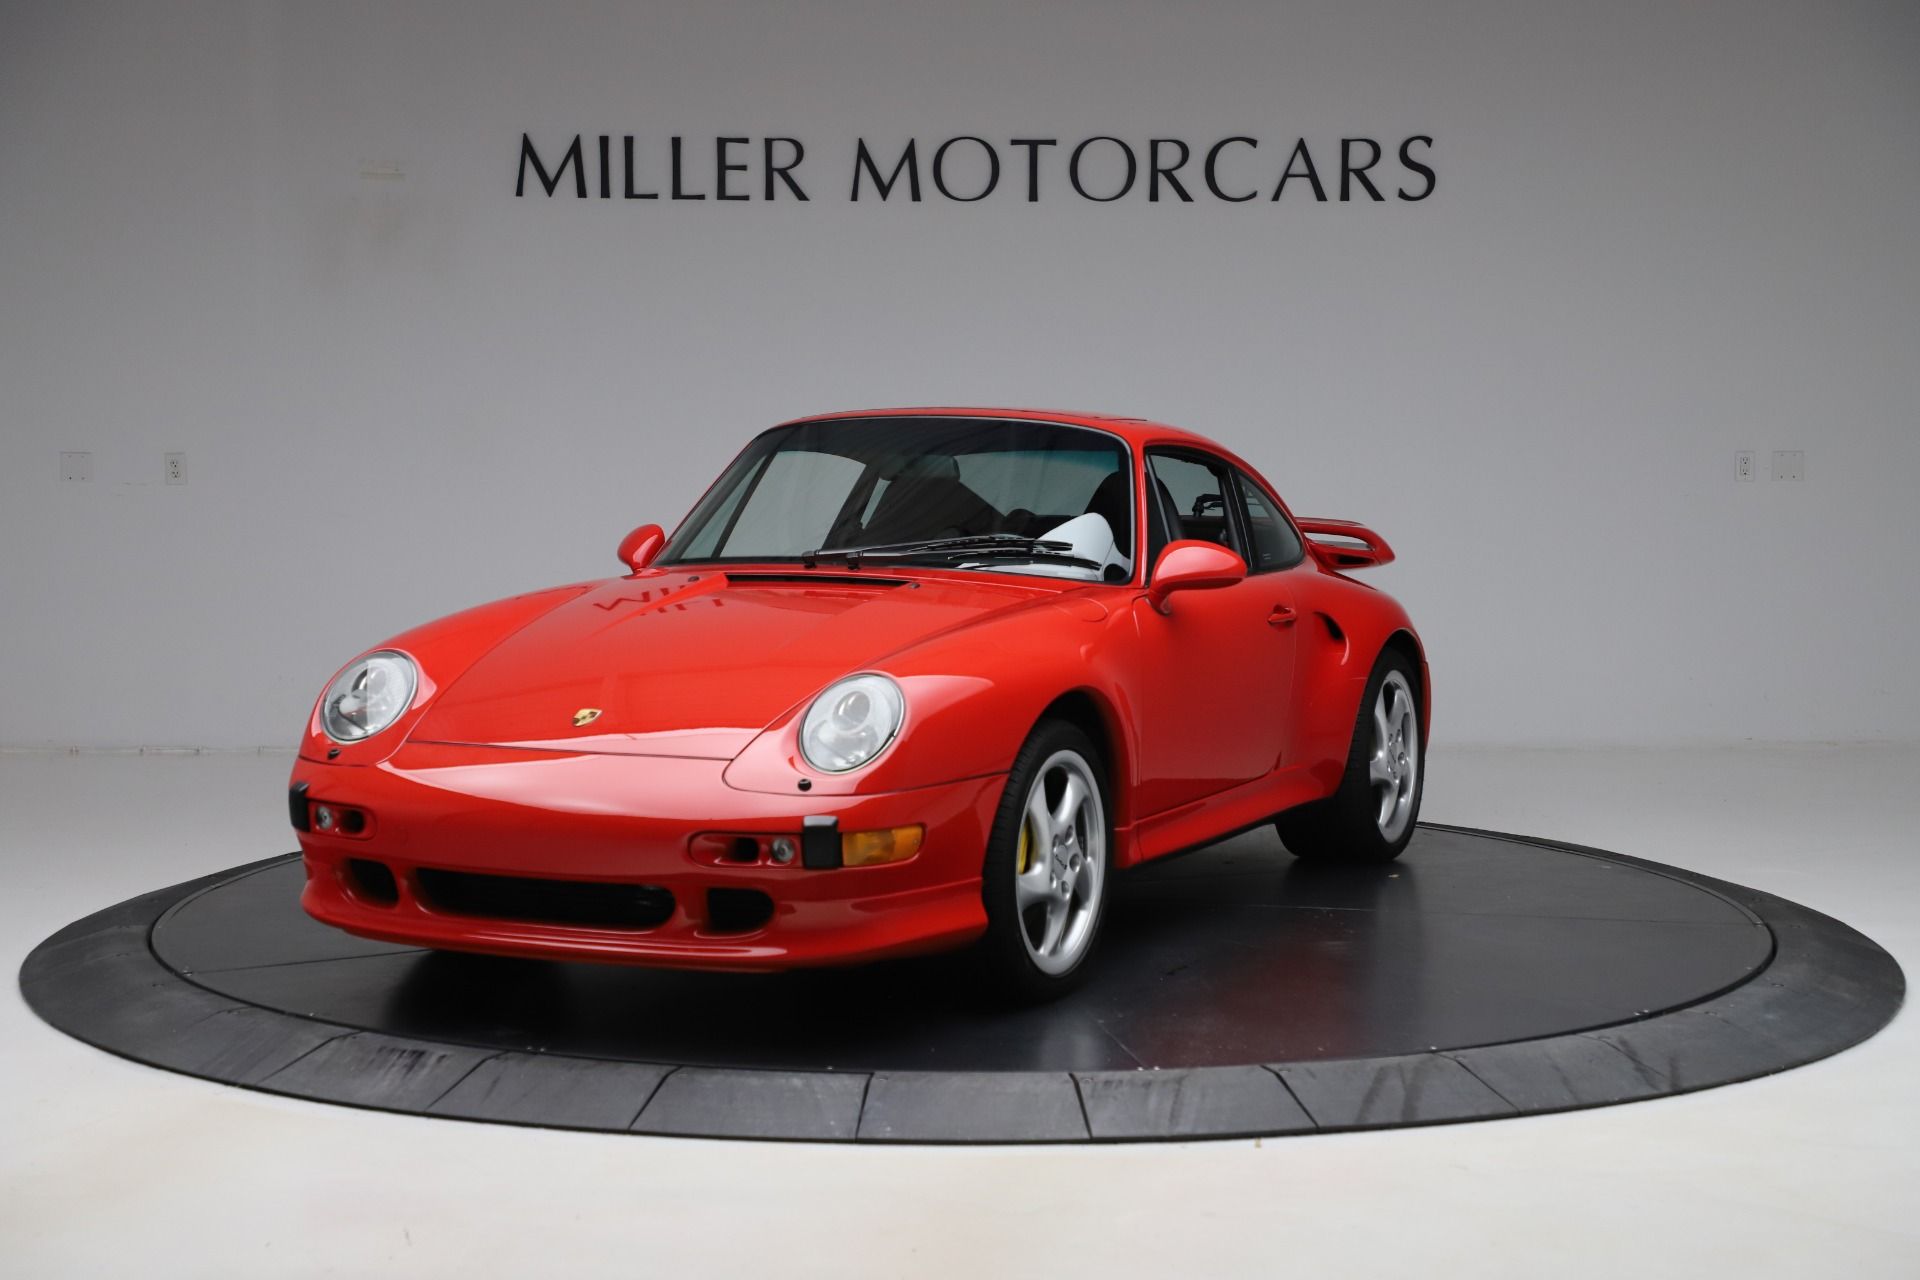 Used 1997 Porsche 911 Turbo S for sale $419,900 at Maserati of Greenwich in Greenwich CT 06830 1